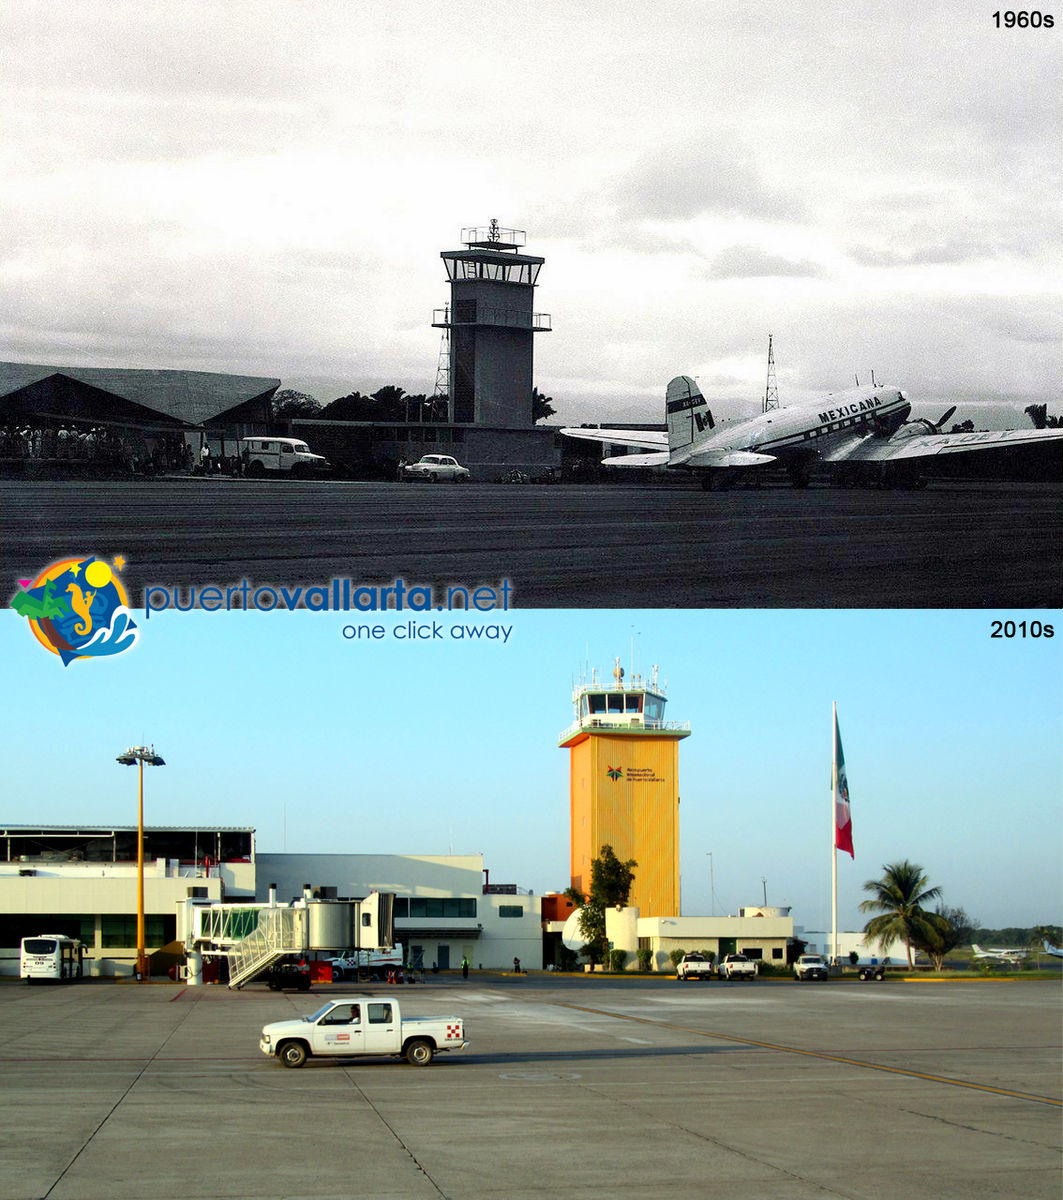 Puerto Vallarta Airport 1960s vs 2010